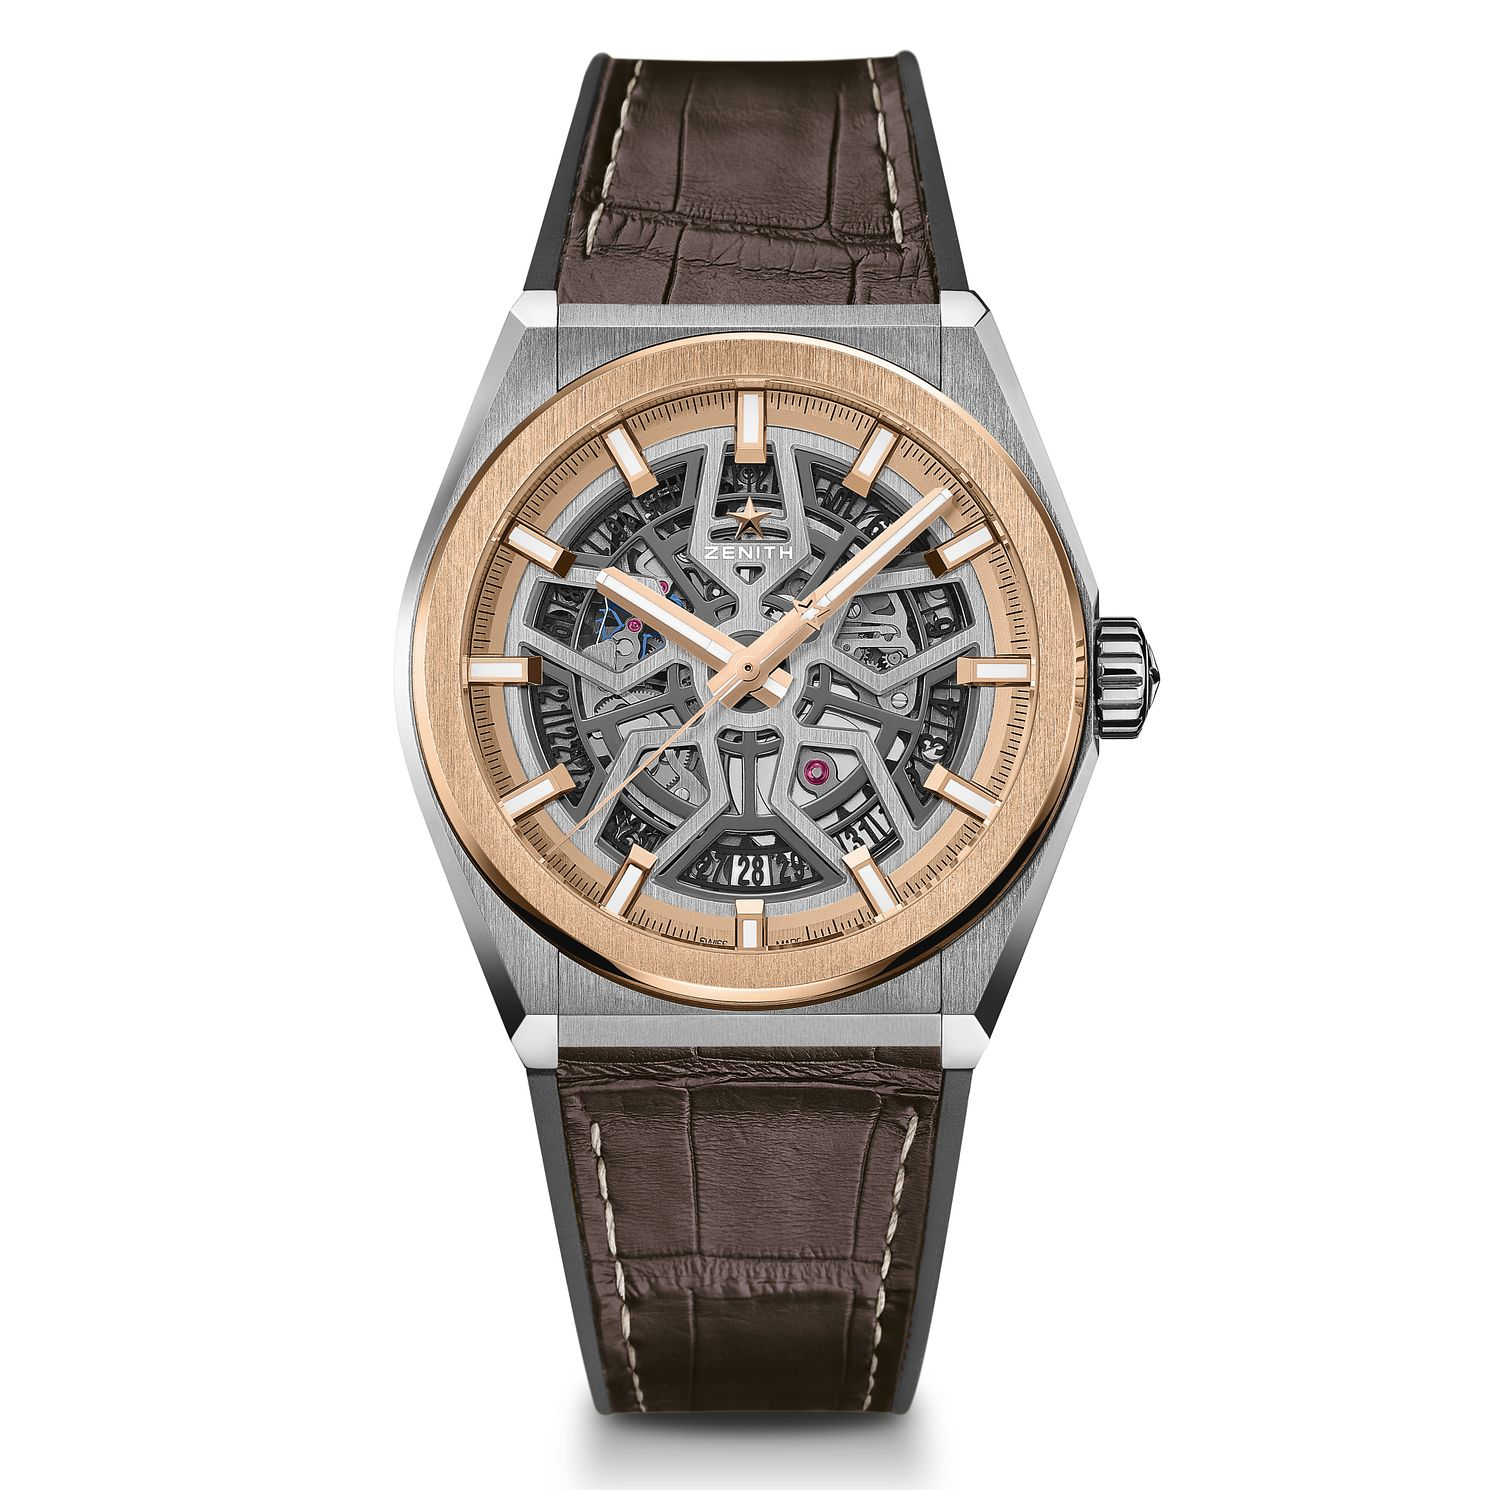 Zenith Defy Classic Men's Brown Leather Strap Watch - Product number 2469278